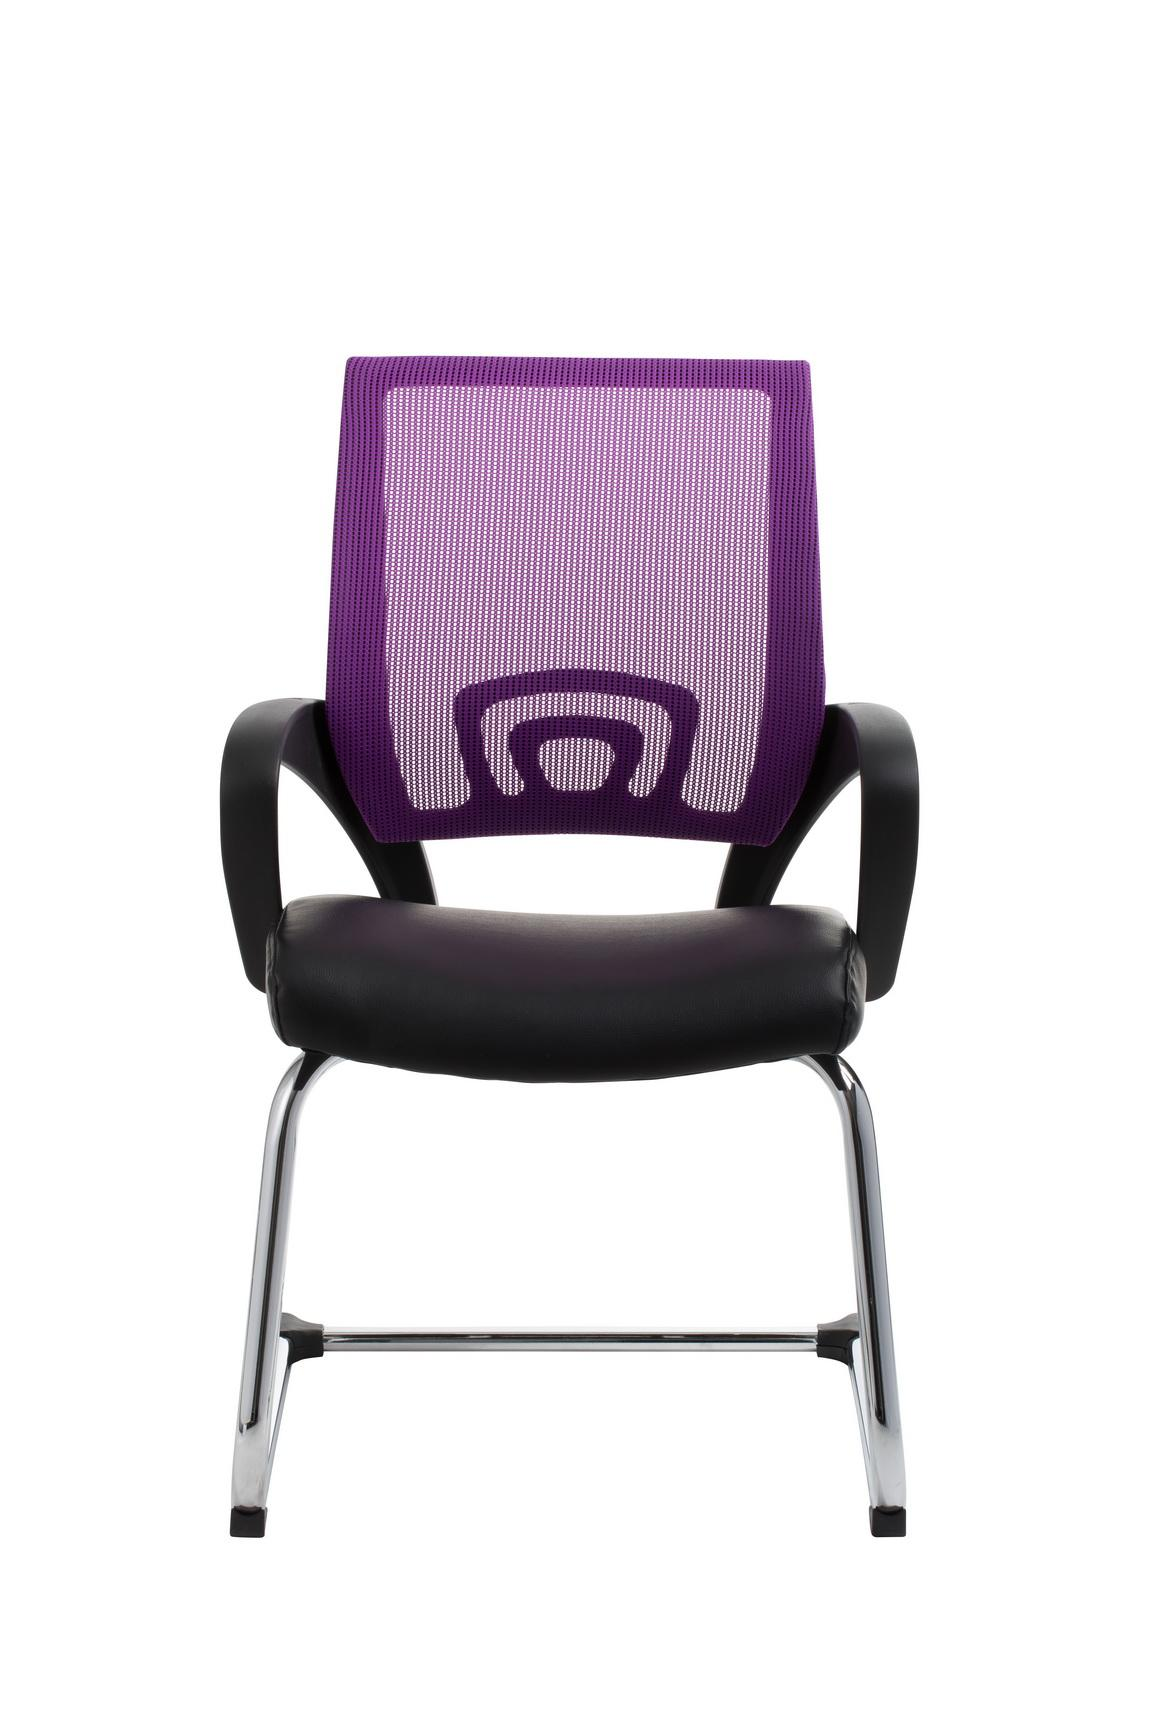 View Visitors Chair In Purple Office Furniture Store